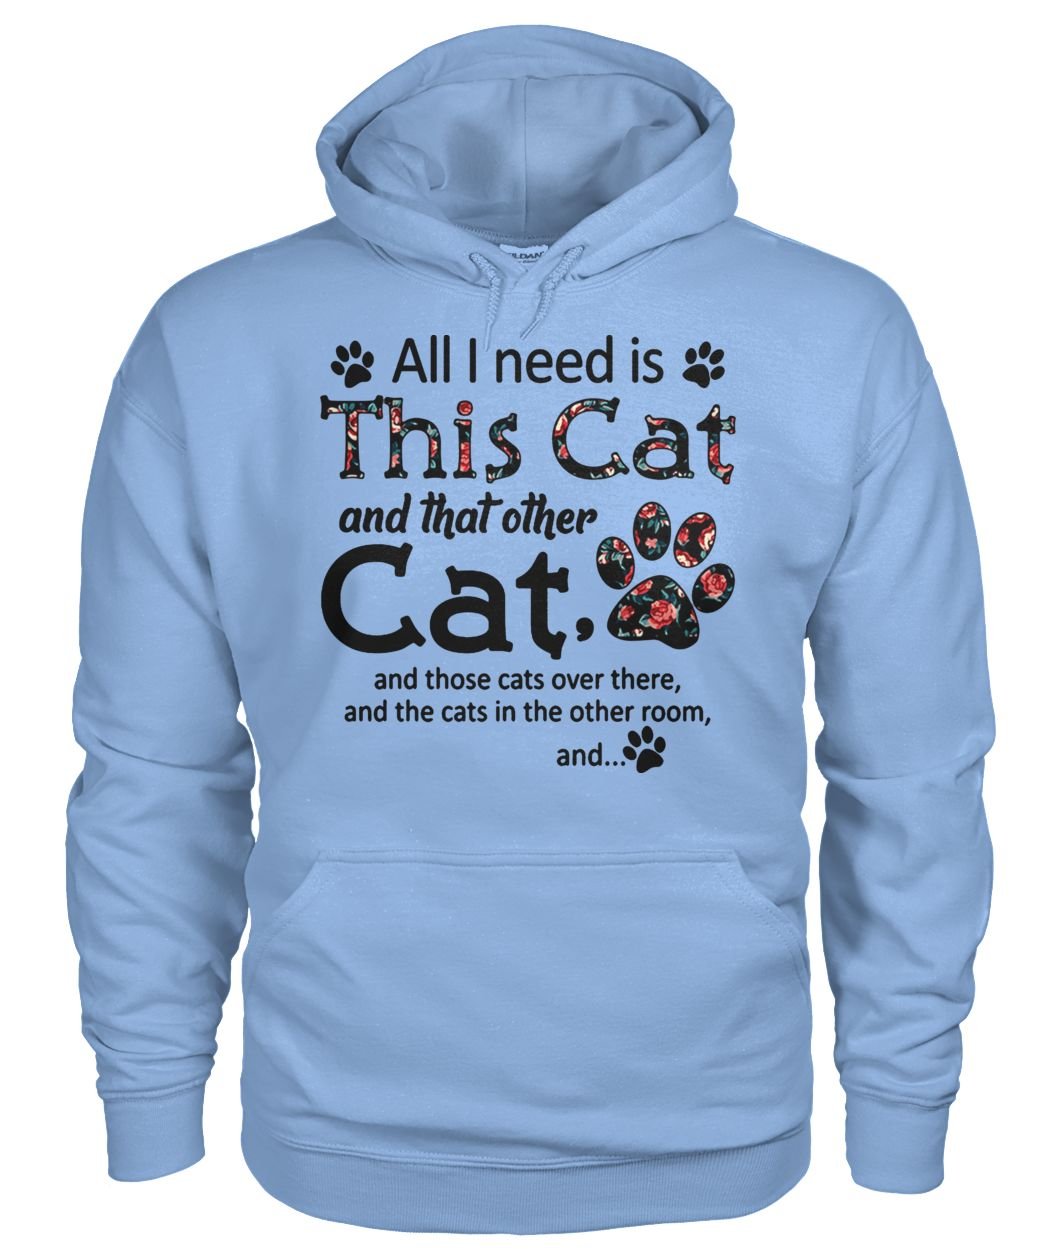 All I need is this cat and that other cat and those cats over there gildan hoodie